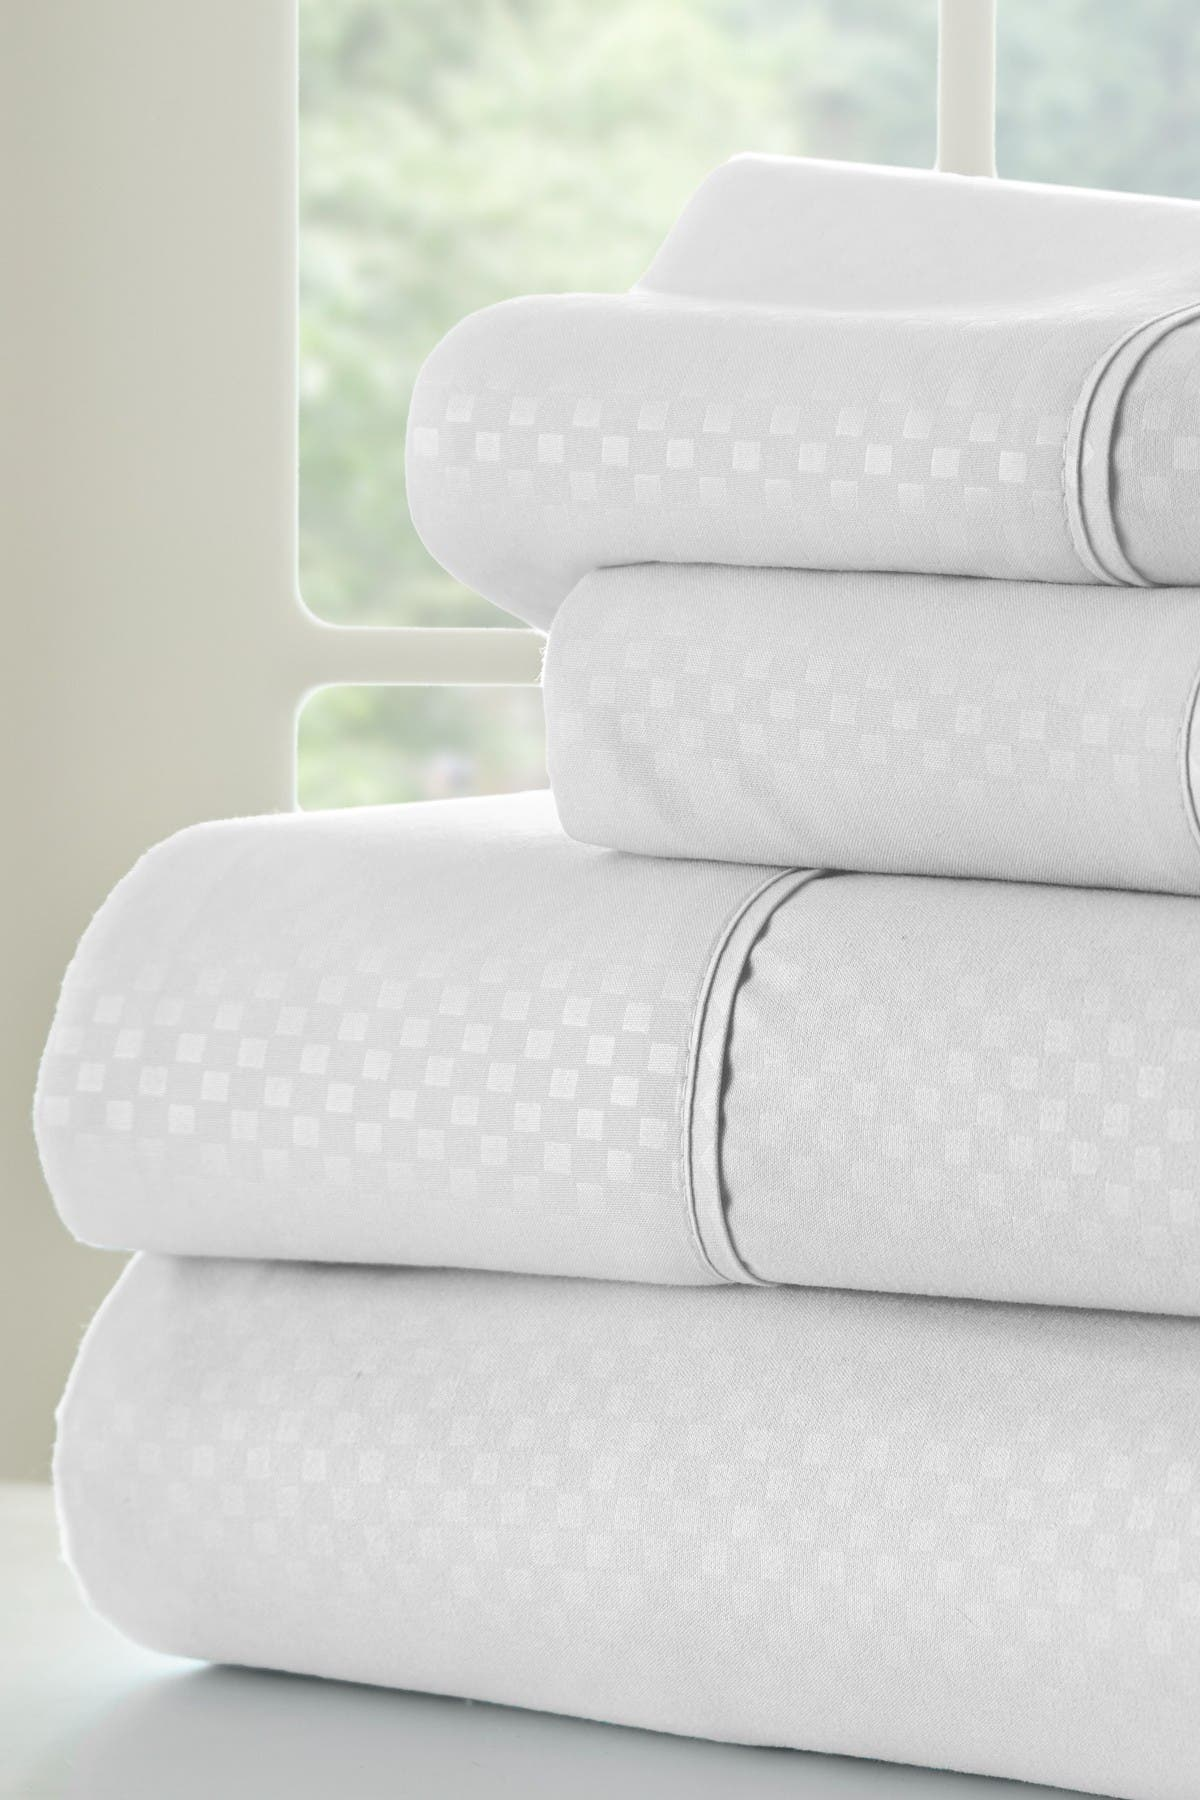 Image of IENJOY HOME California King Hotel Collection Premium Ultra Soft 4-Piece Checkered Bed Sheet Set - White